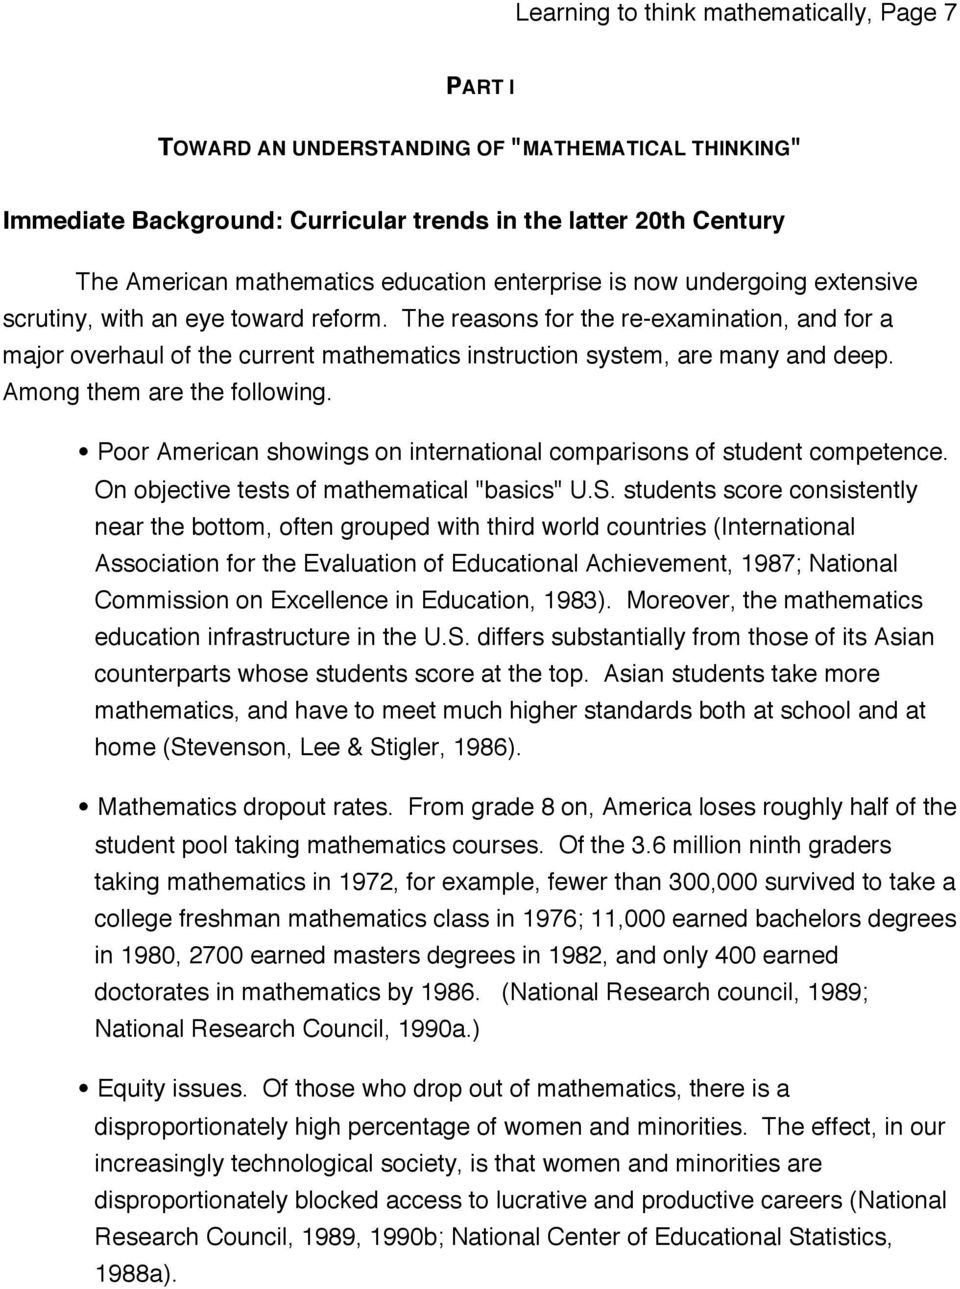 The reasons for the re-examination, and for a major overhaul of the current mathematics instruction system, are many and deep. Among them are the following.